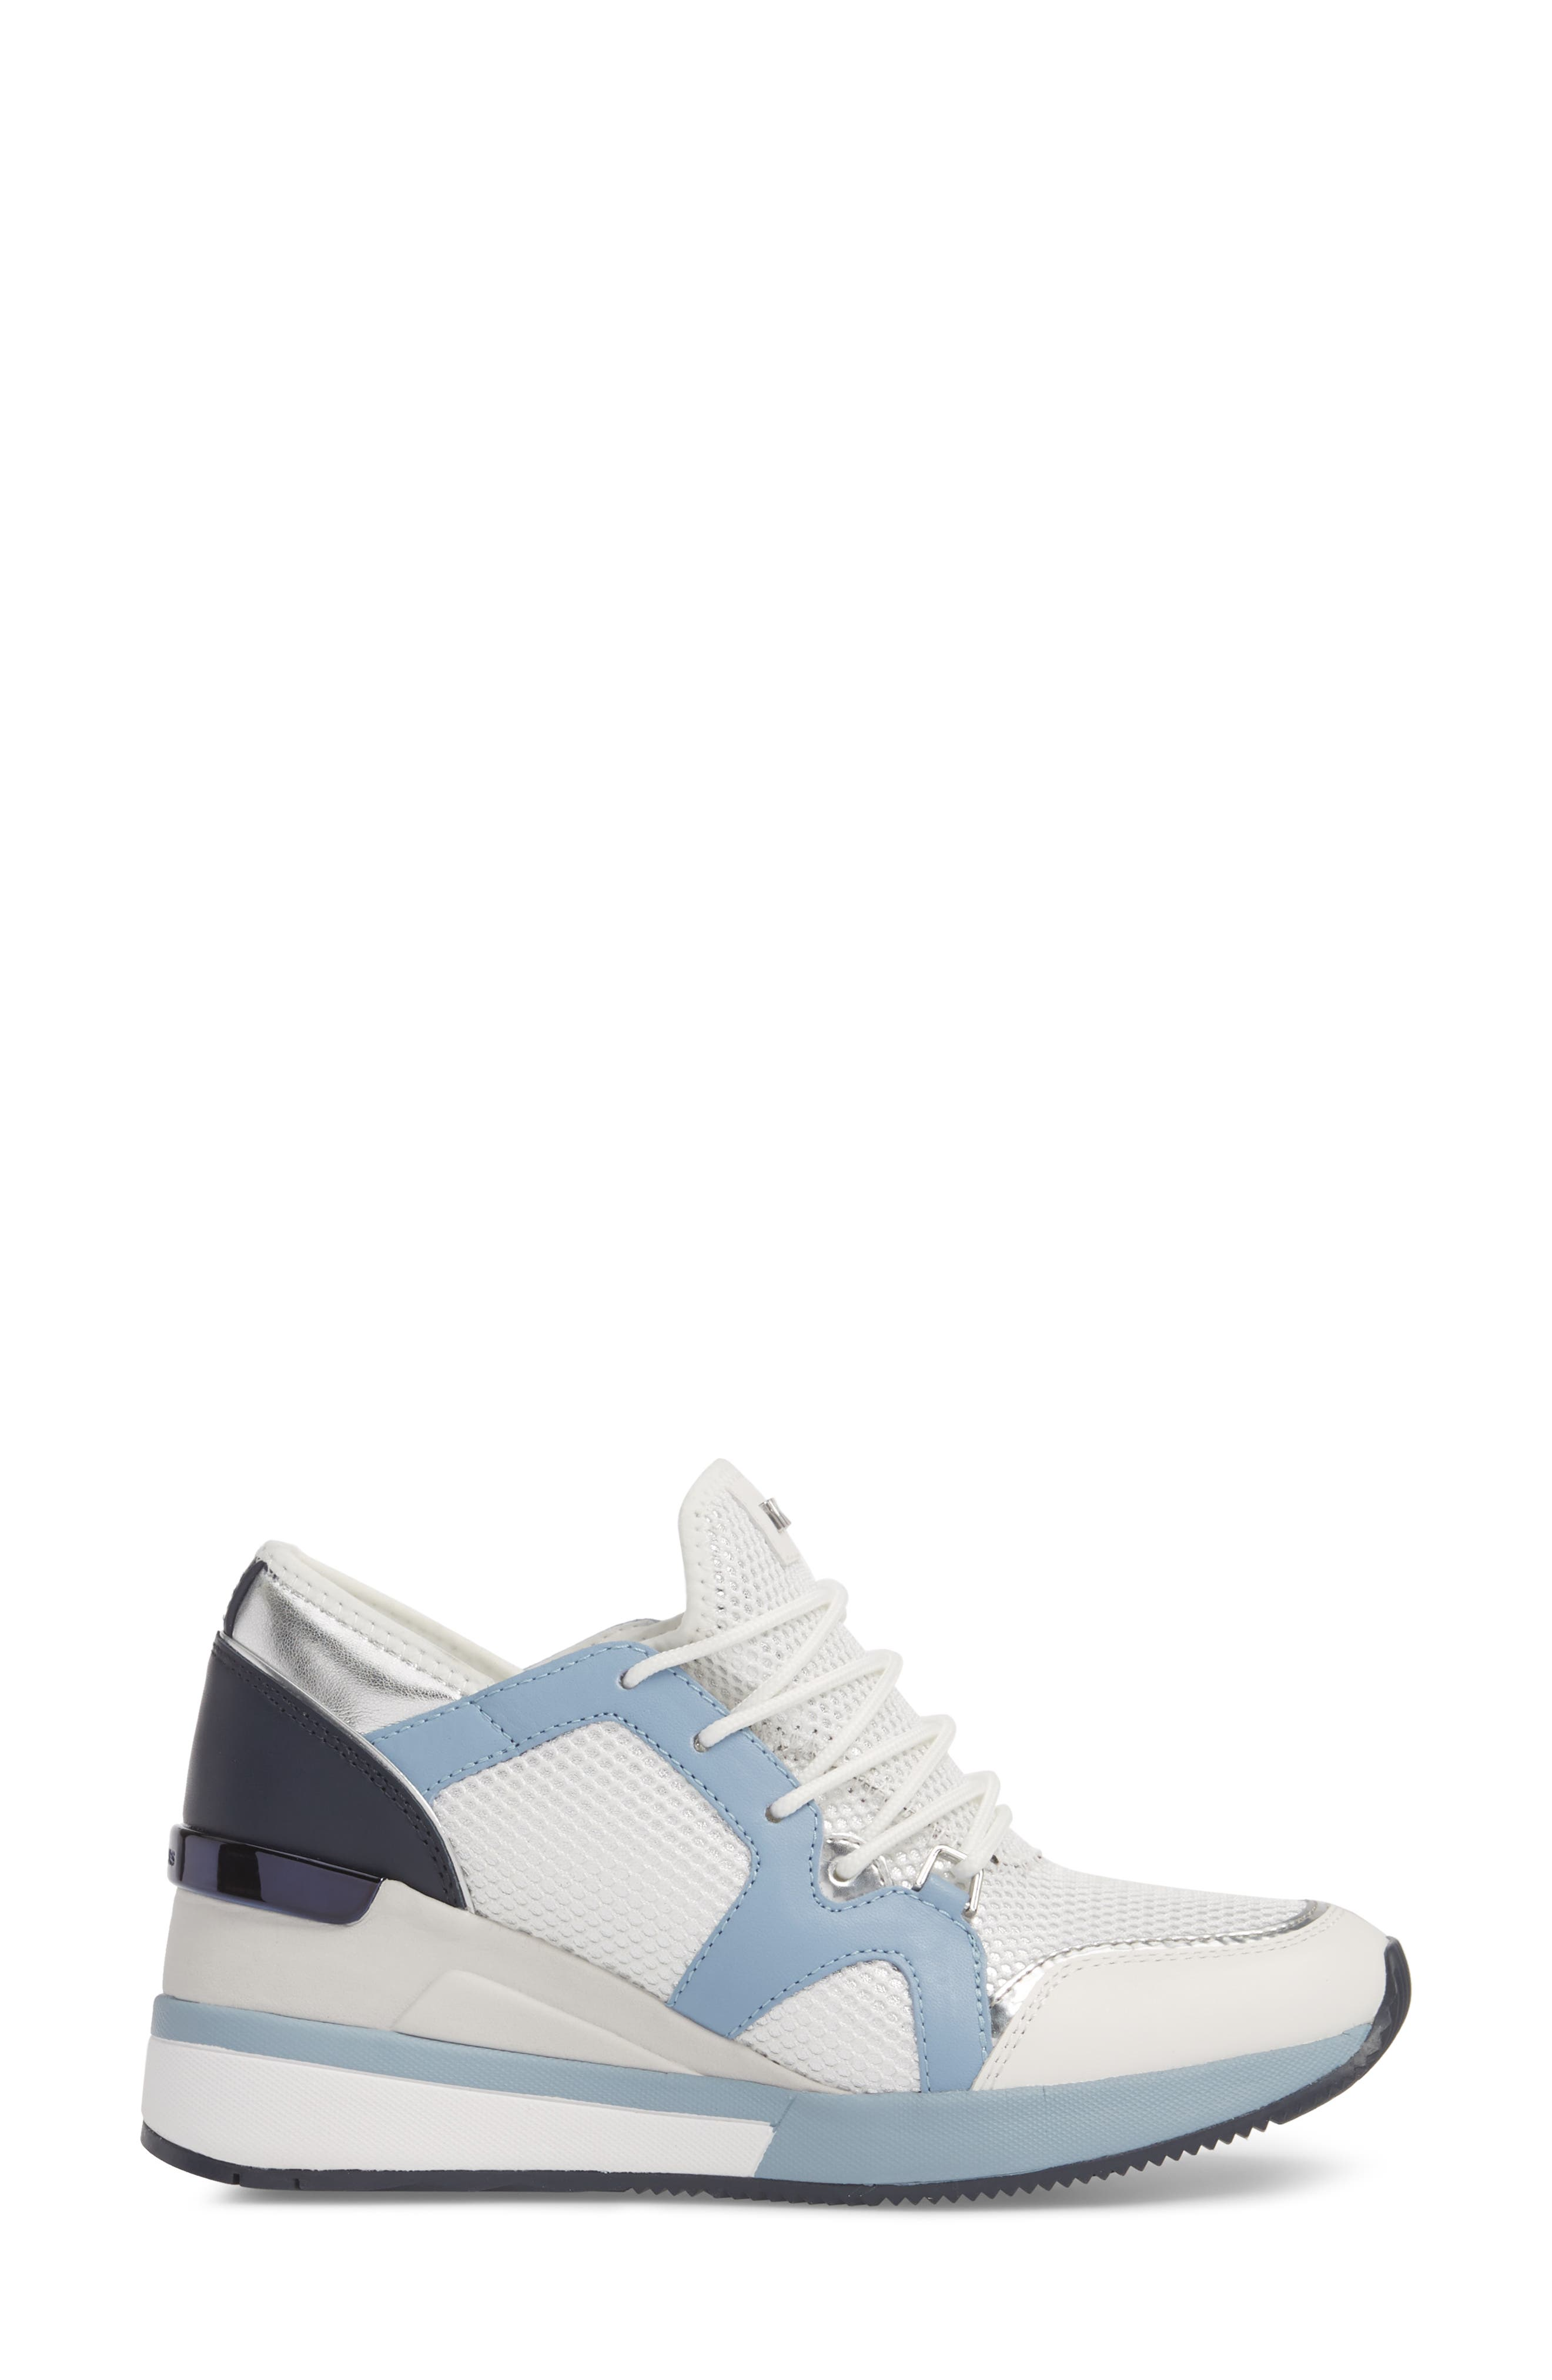 Scout Wedge Sneaker,                             Alternate thumbnail 3, color,                             429